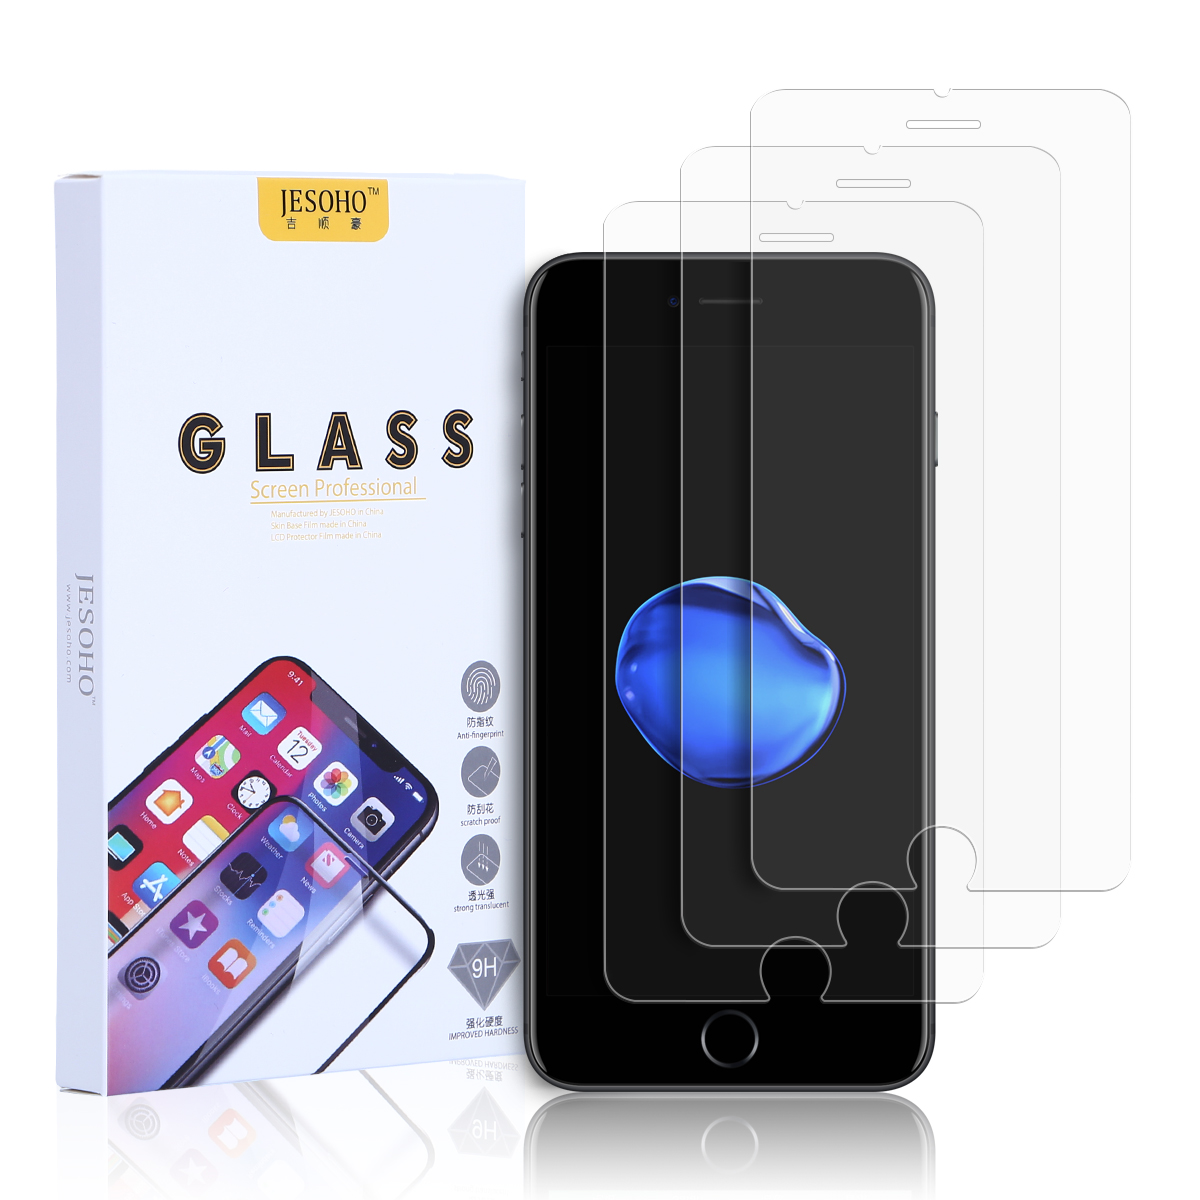 JESOHO iPhone Screen Glass Protector, 3hours strengthen work,